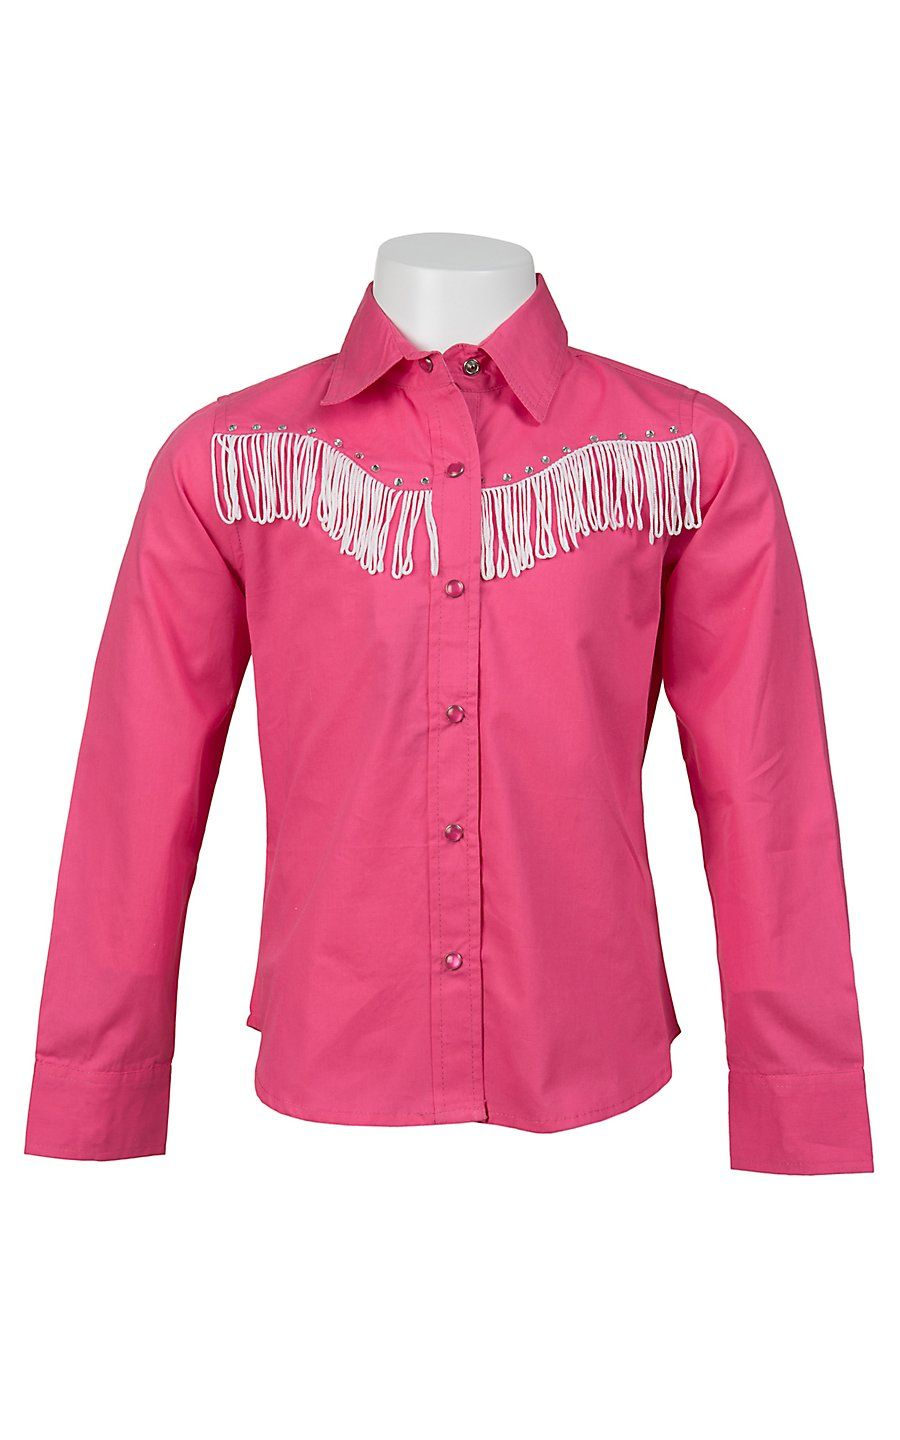 Cumberland Outfitters Girl 39 S Hot Pink With White Fringe